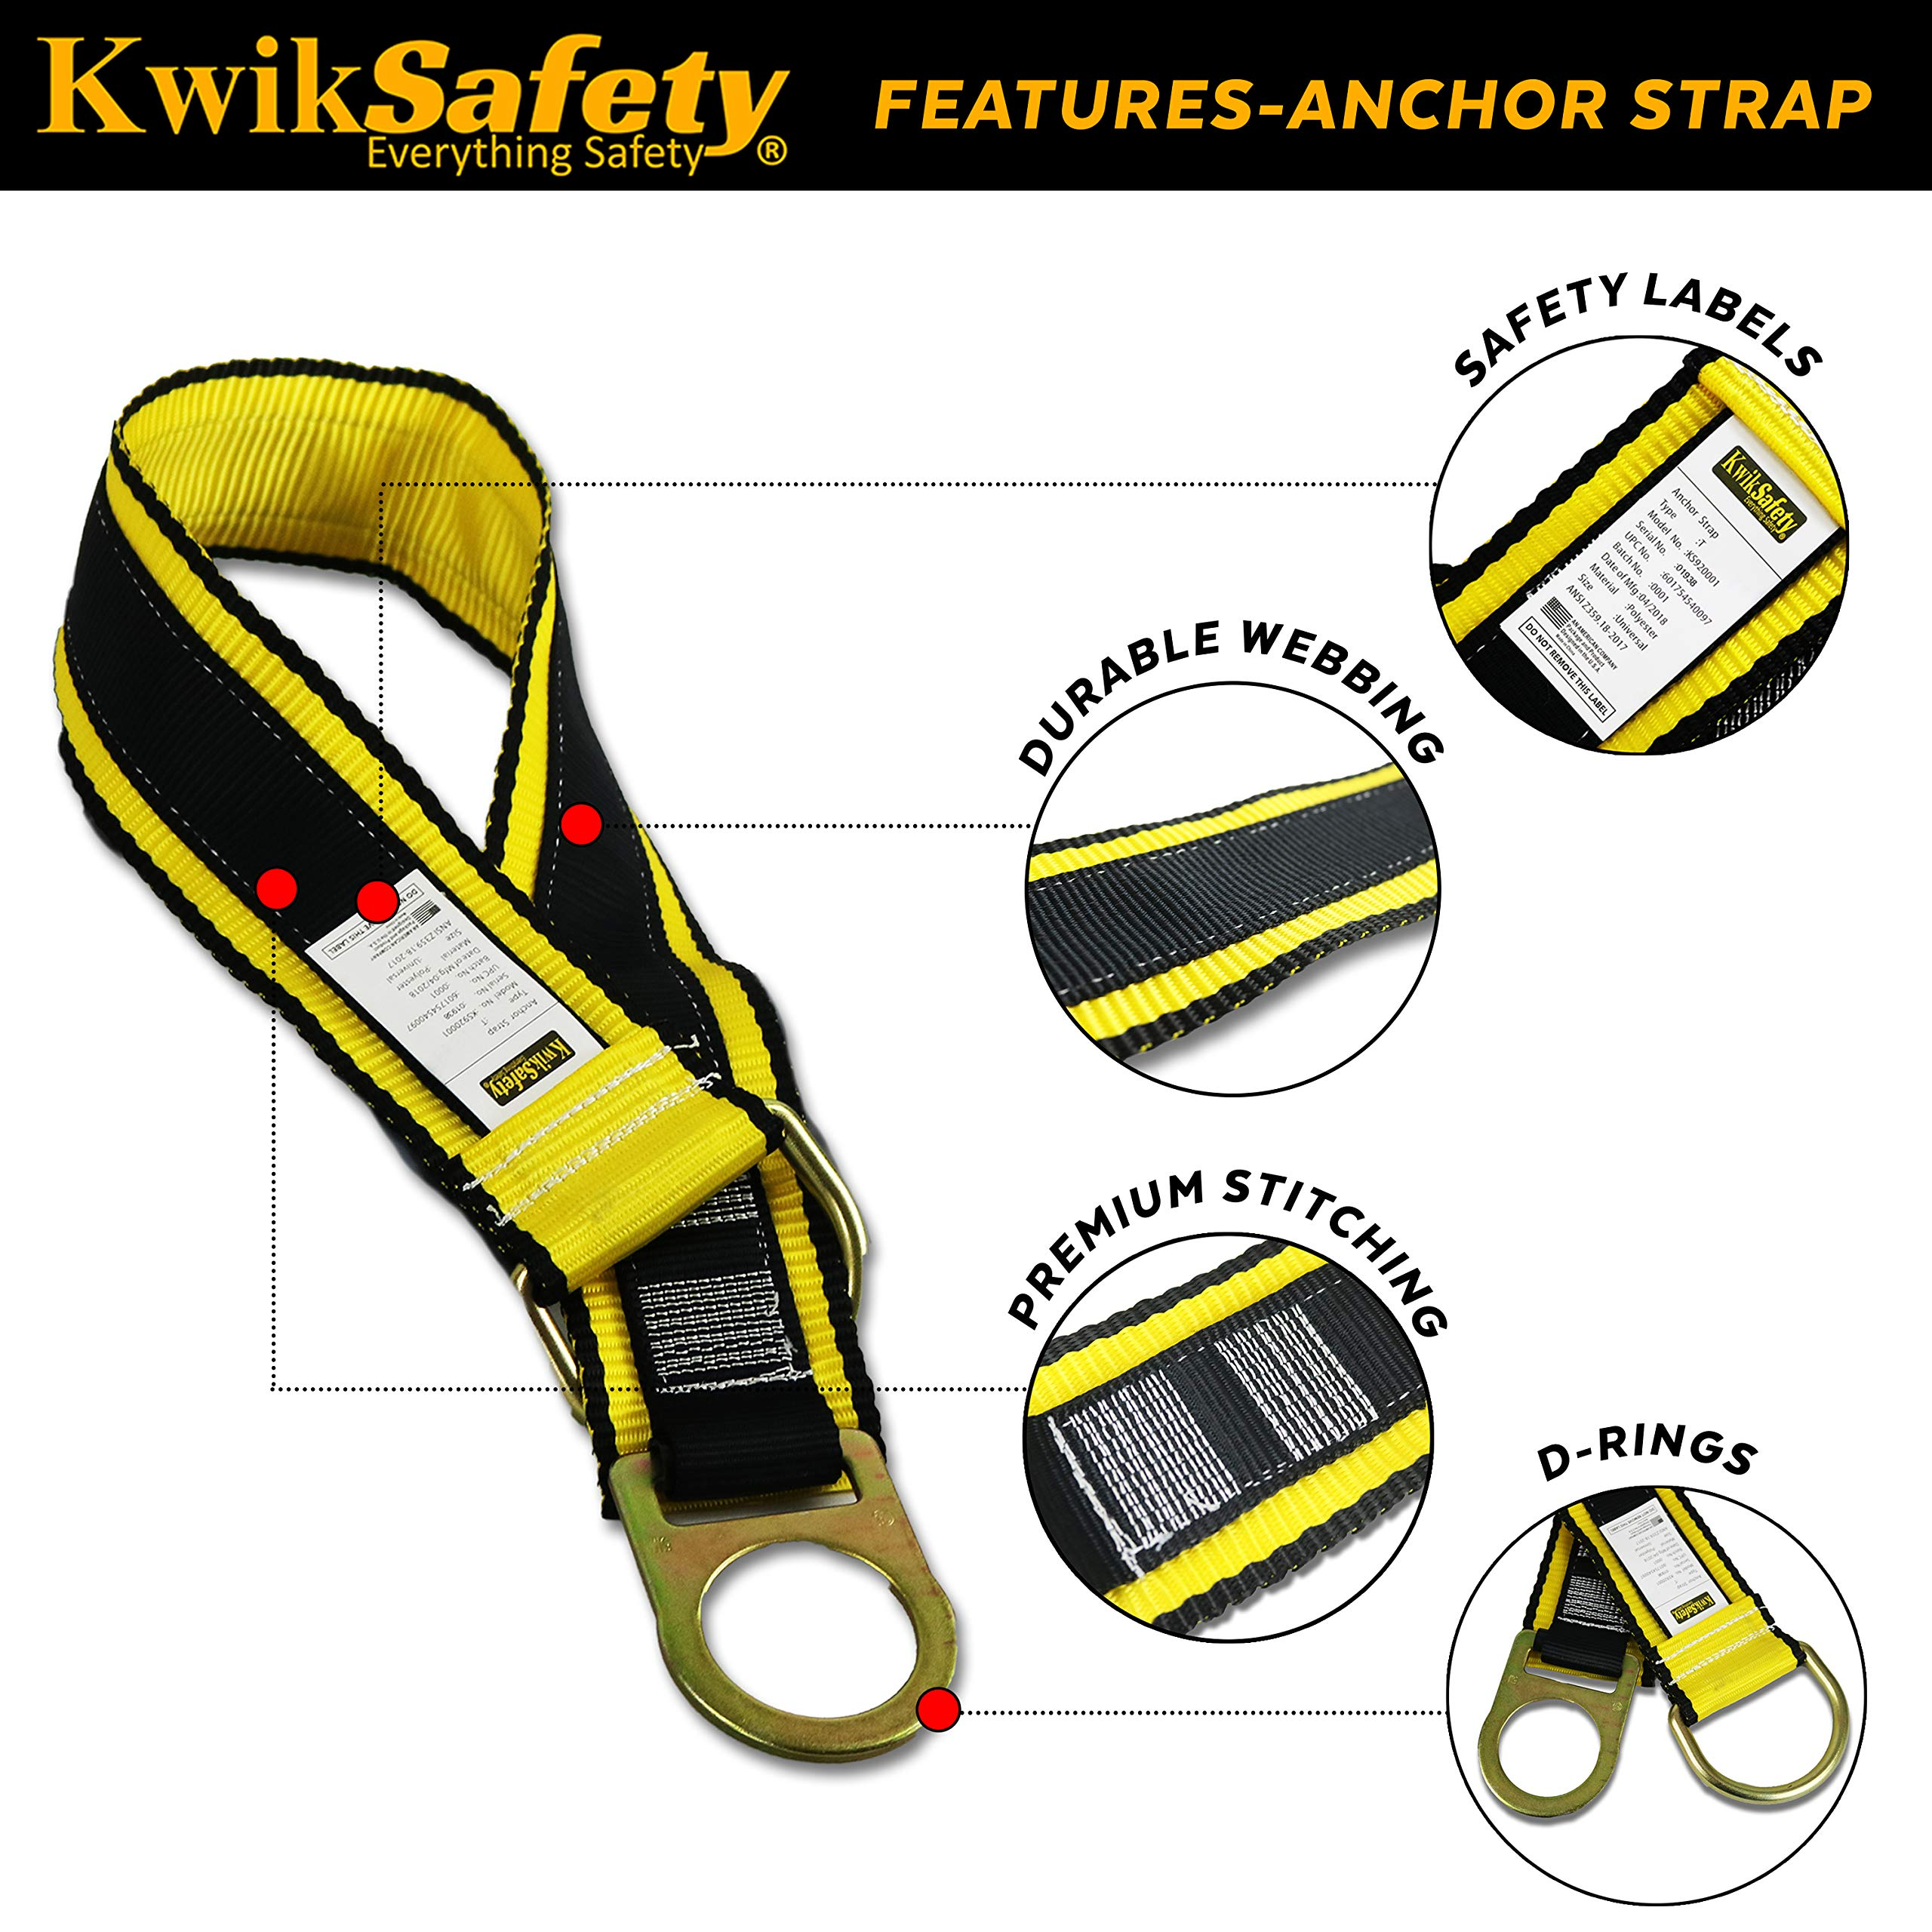 KwikSafety (Charlotte, NC) SCORPION KIT   1D Full Body Safety Harness, 6' Lanyard Attached, 3' Cross Arm Strap Anchor ANSI OSHA PPE Fall Protection Arrest Restraint Construction Roofer Bucket by KwikSafety (Image #5)